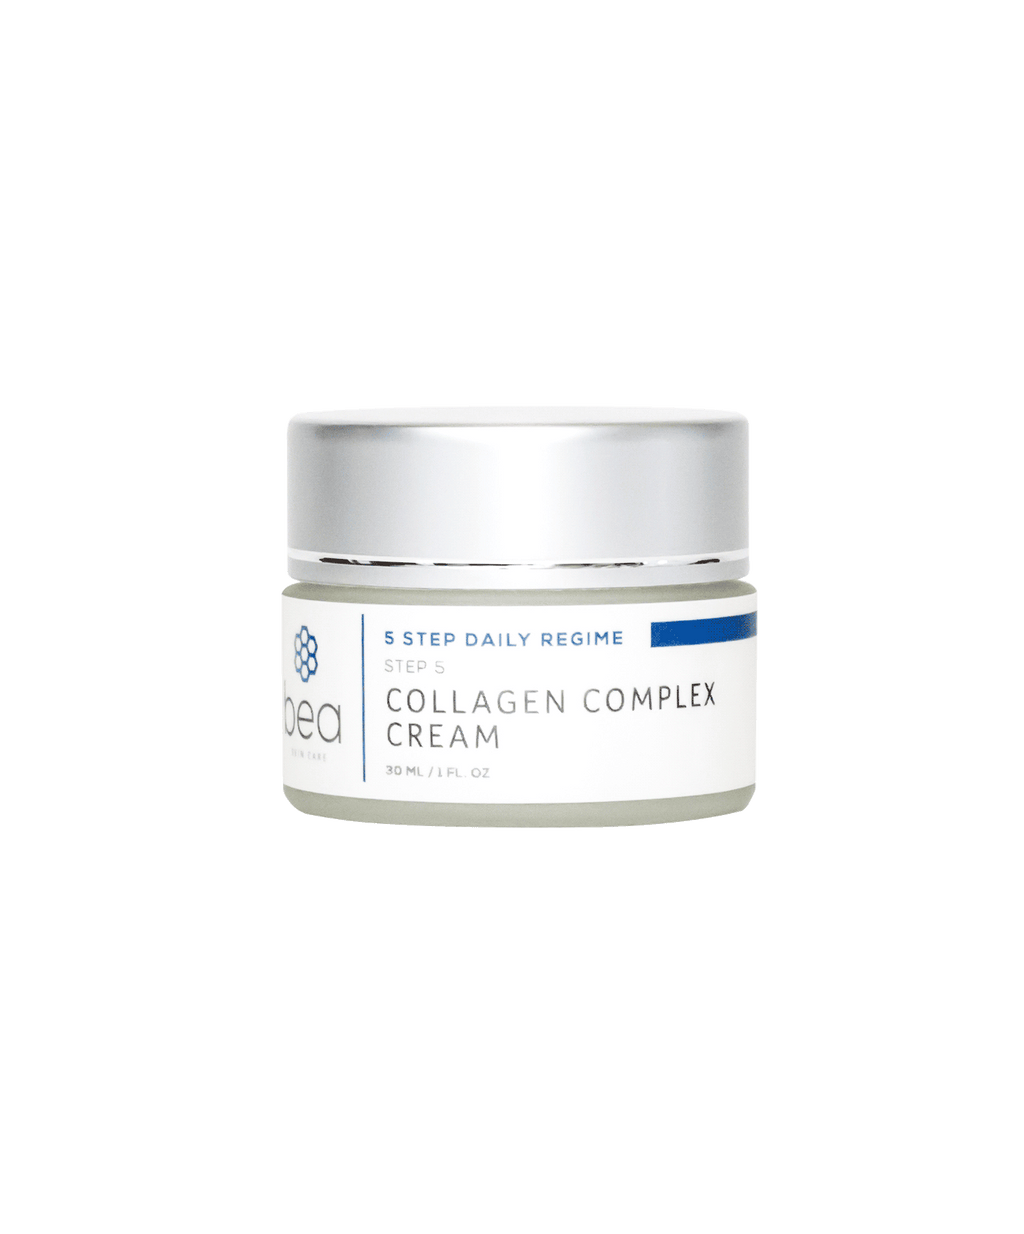 Step 5: Collagen Complex Cream - 30 ml Face Cream bea Skin Care